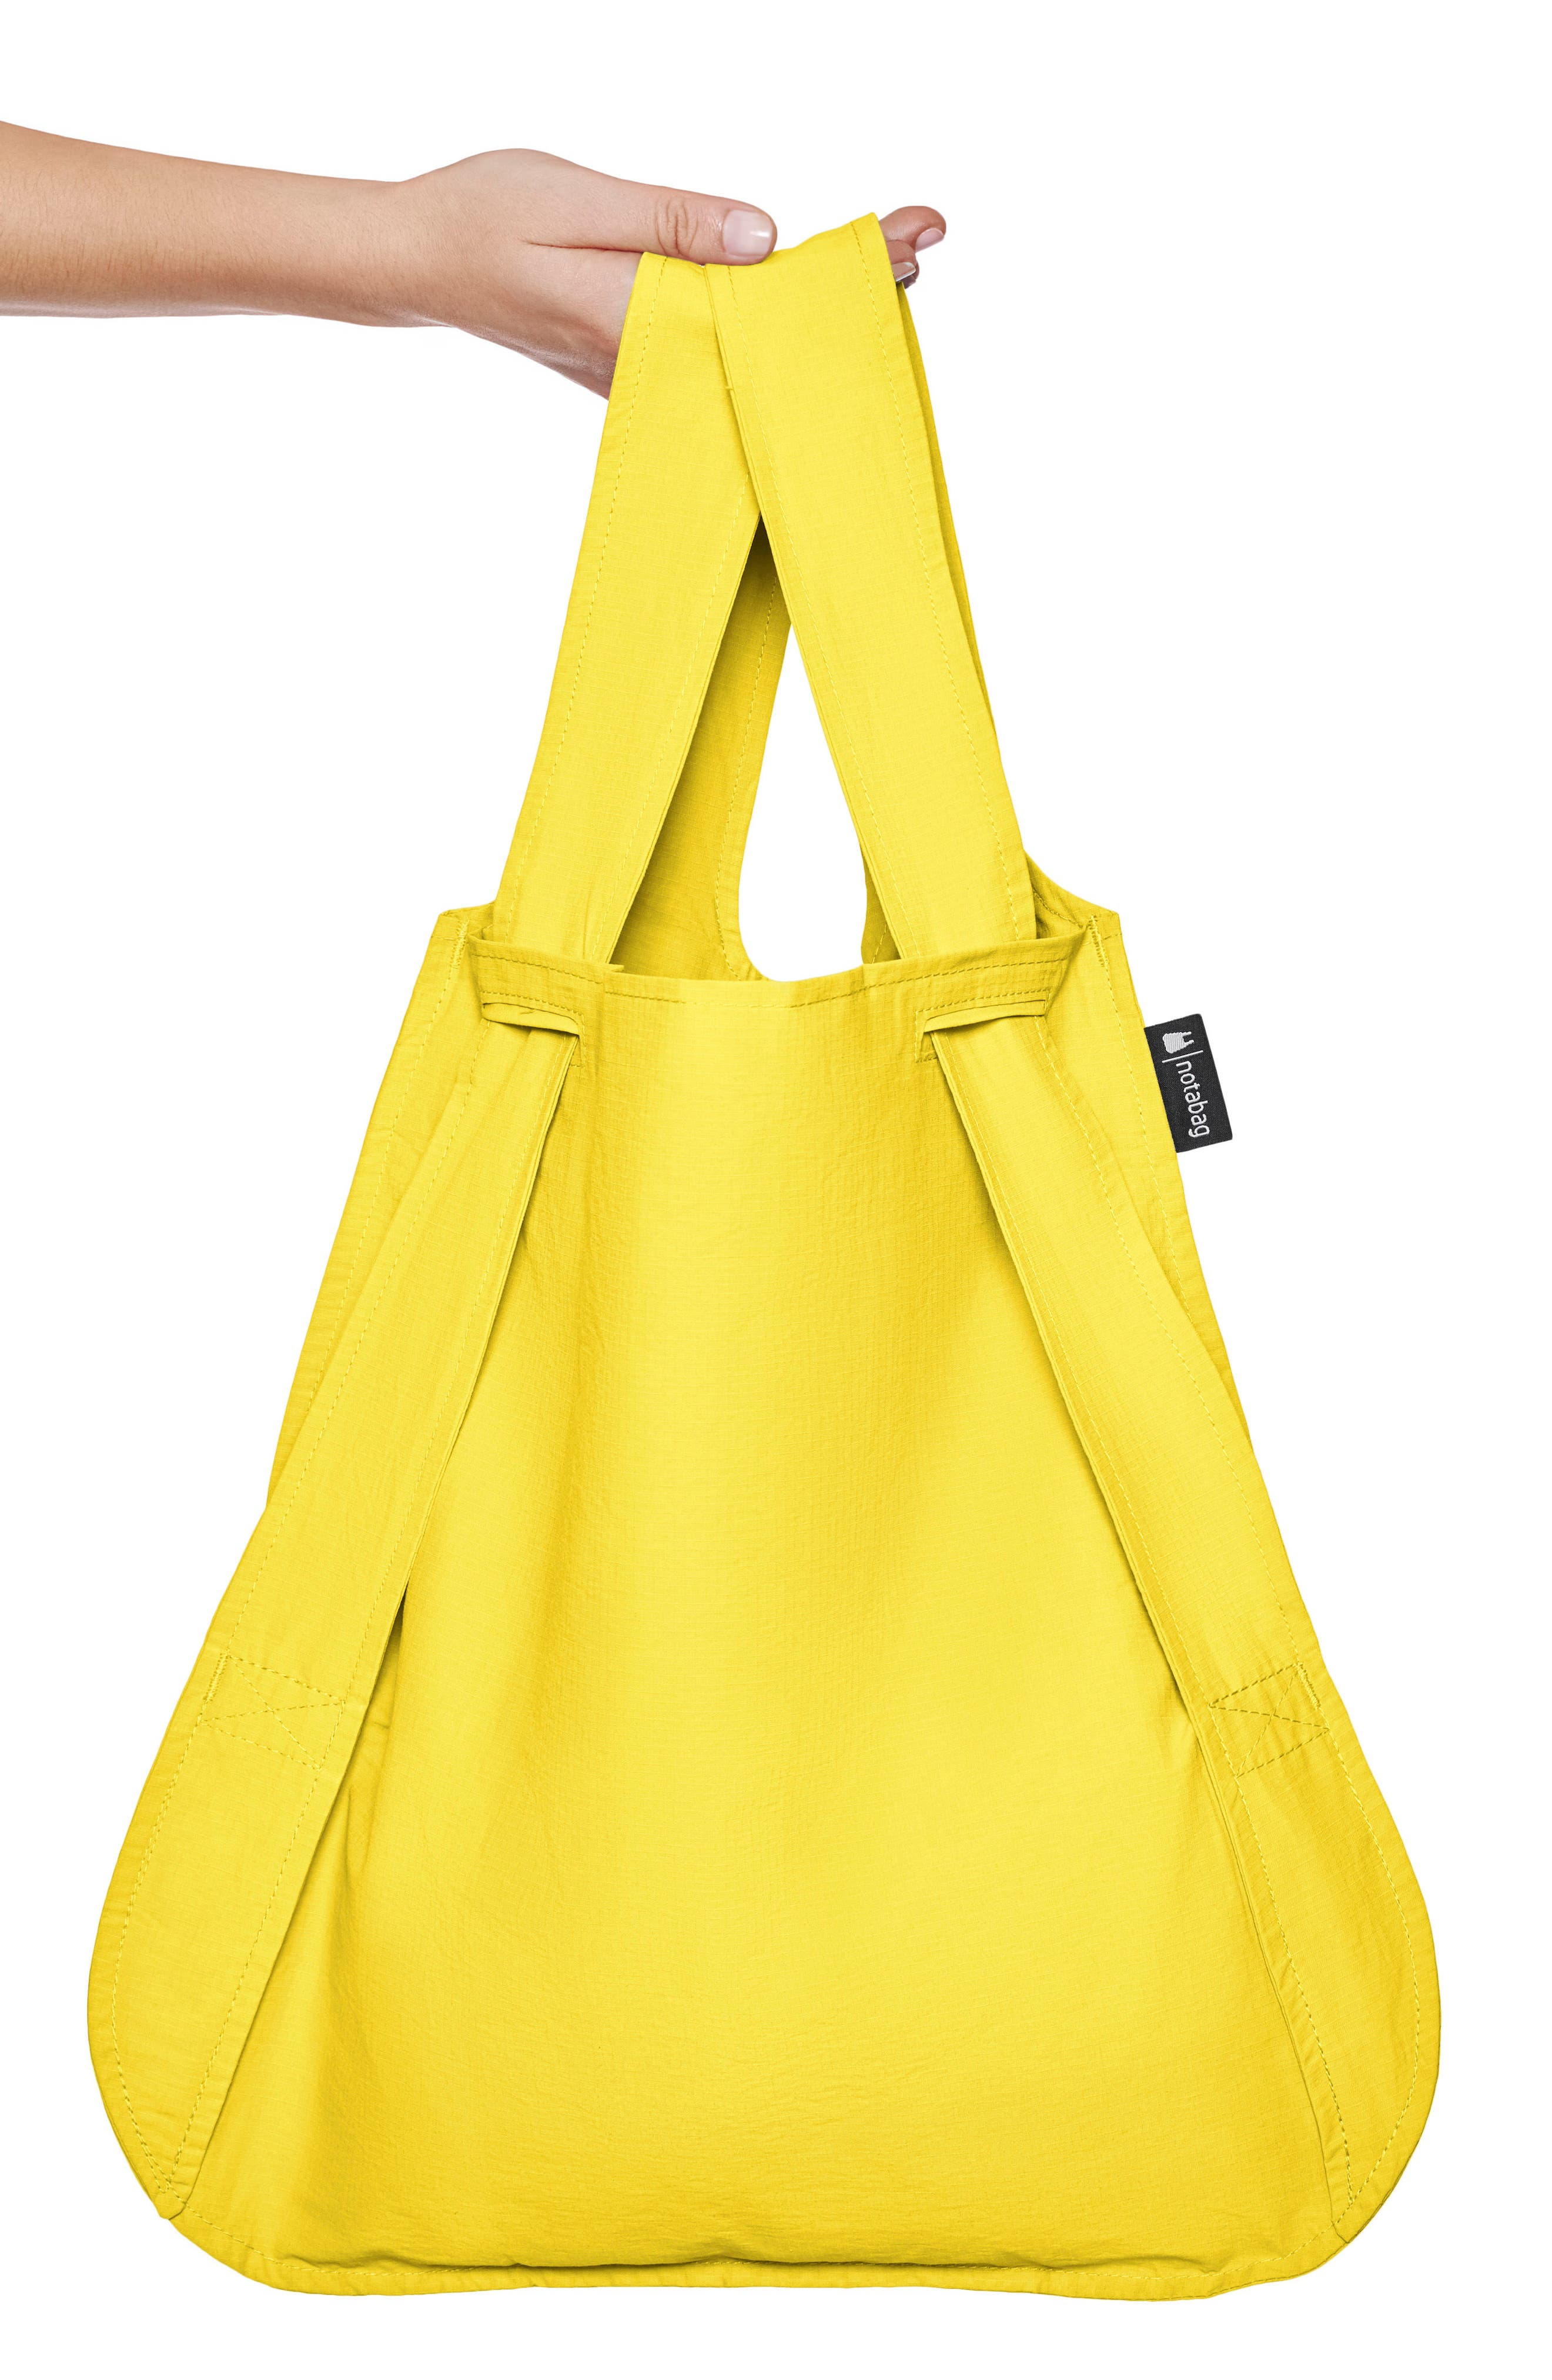 Convertible Tote Backpack,                             Alternate thumbnail 3, color,                             YELLOW